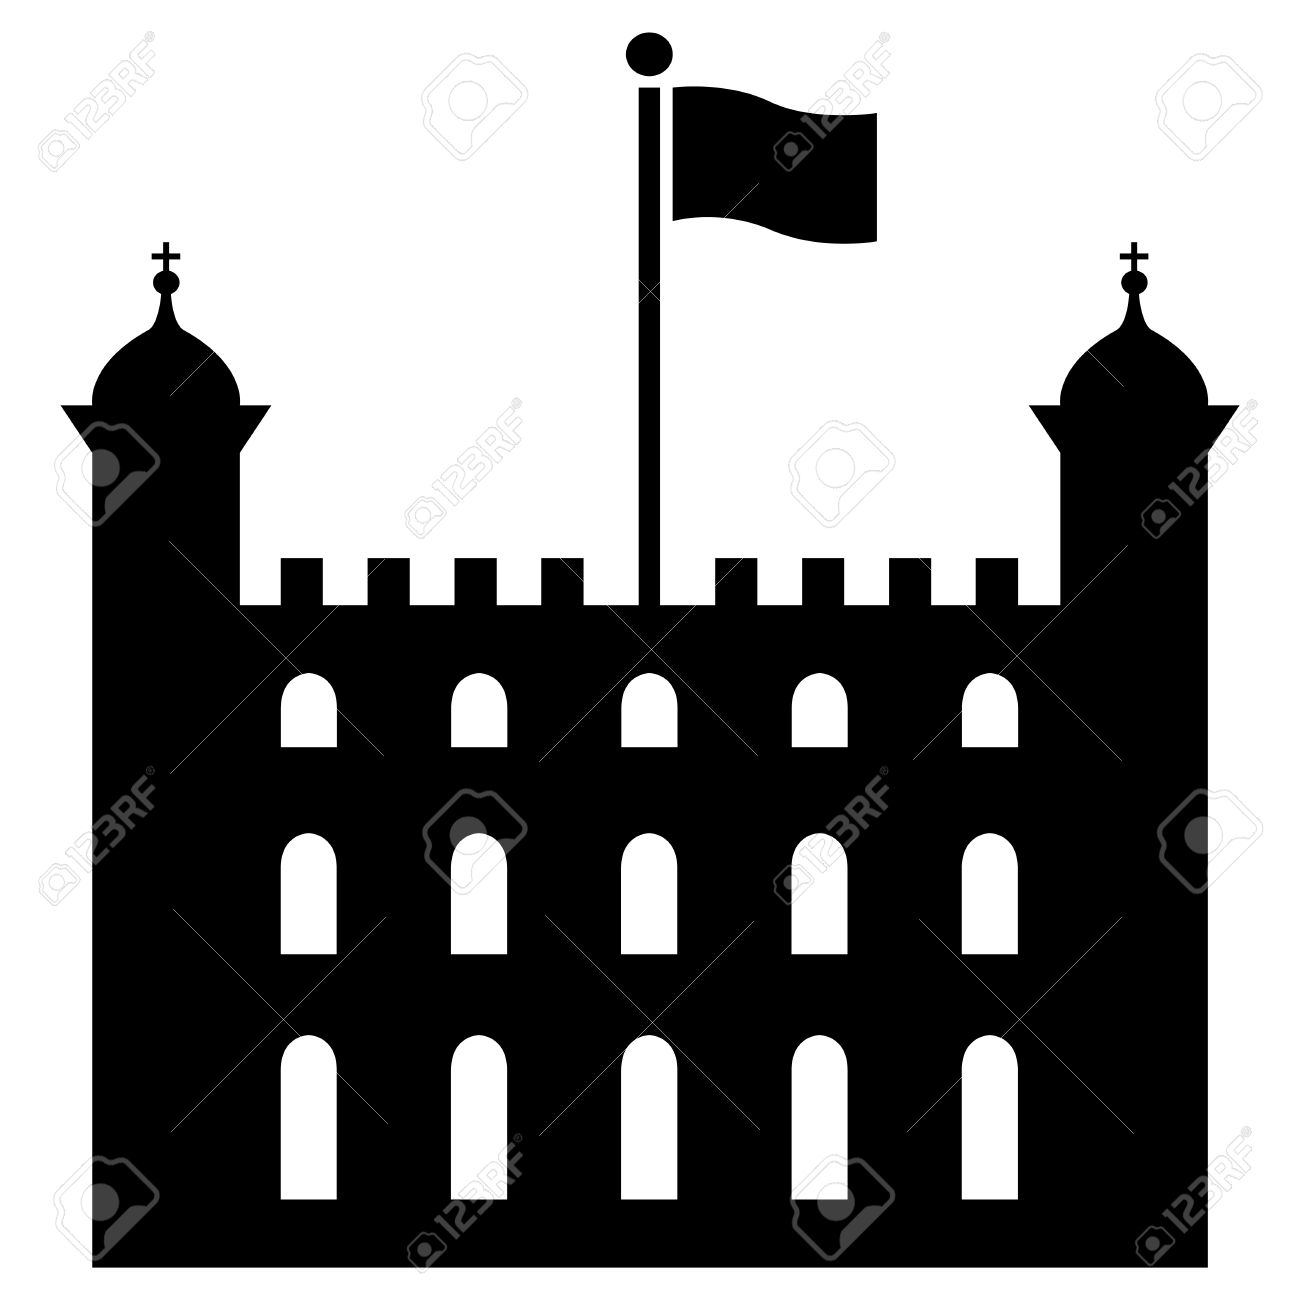 Vector Illustration Of Tower Of London Royalty Free Cliparts.